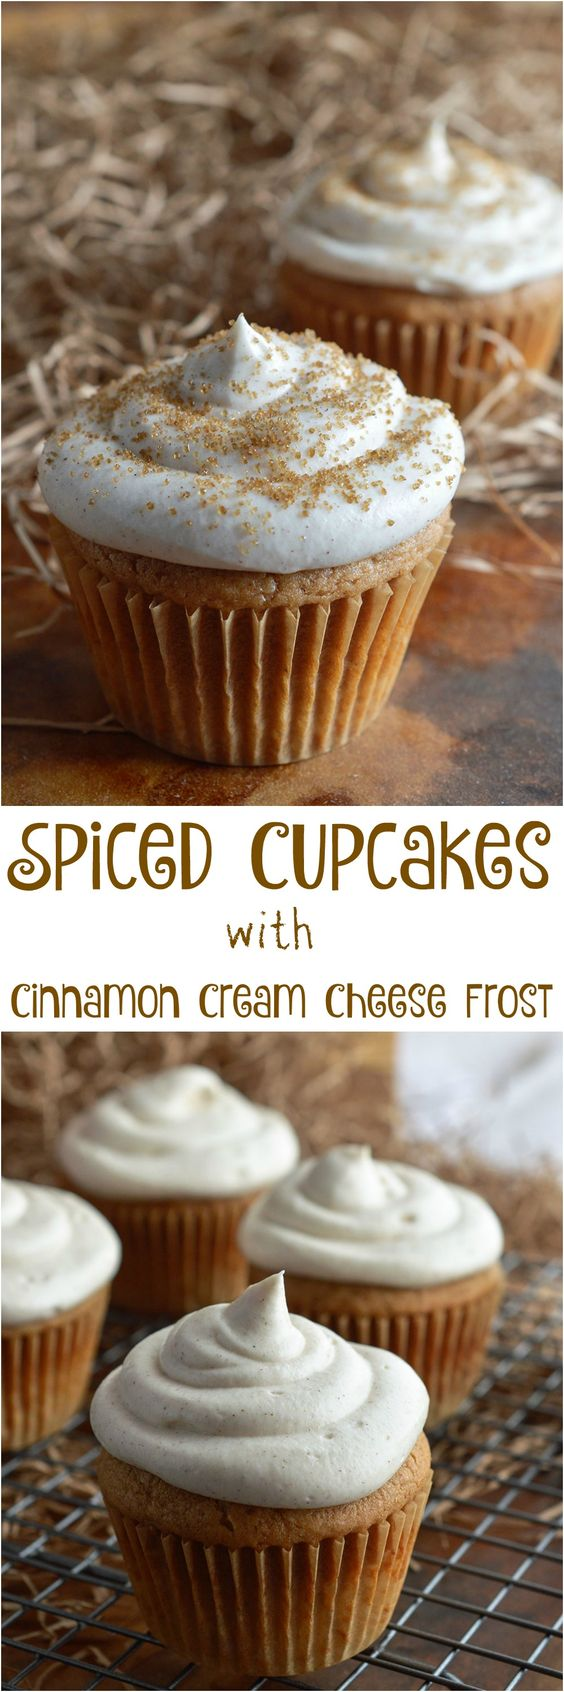 Thanksgiving Desserts: Spiced Cupcakes with Cinnamon Cream Cheese Frosting